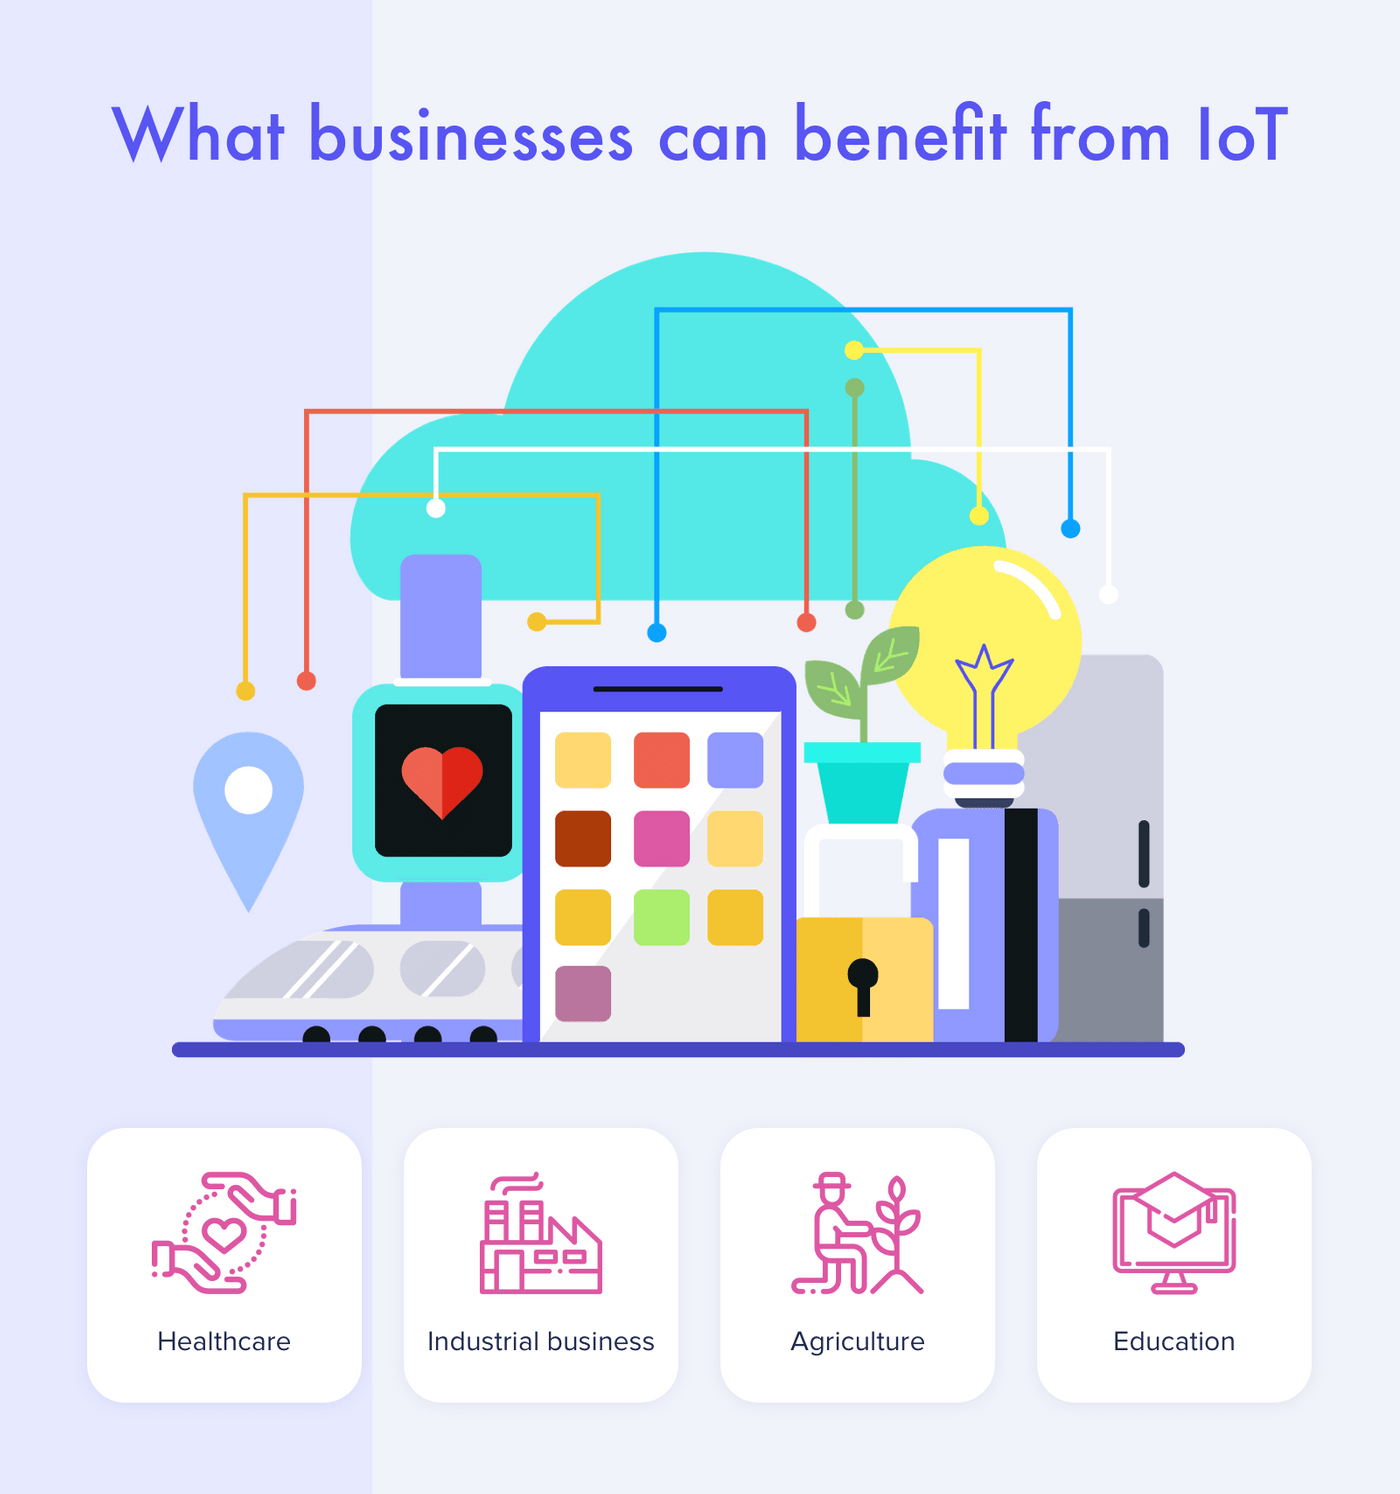 What opportunities can IoT bring to different businesses